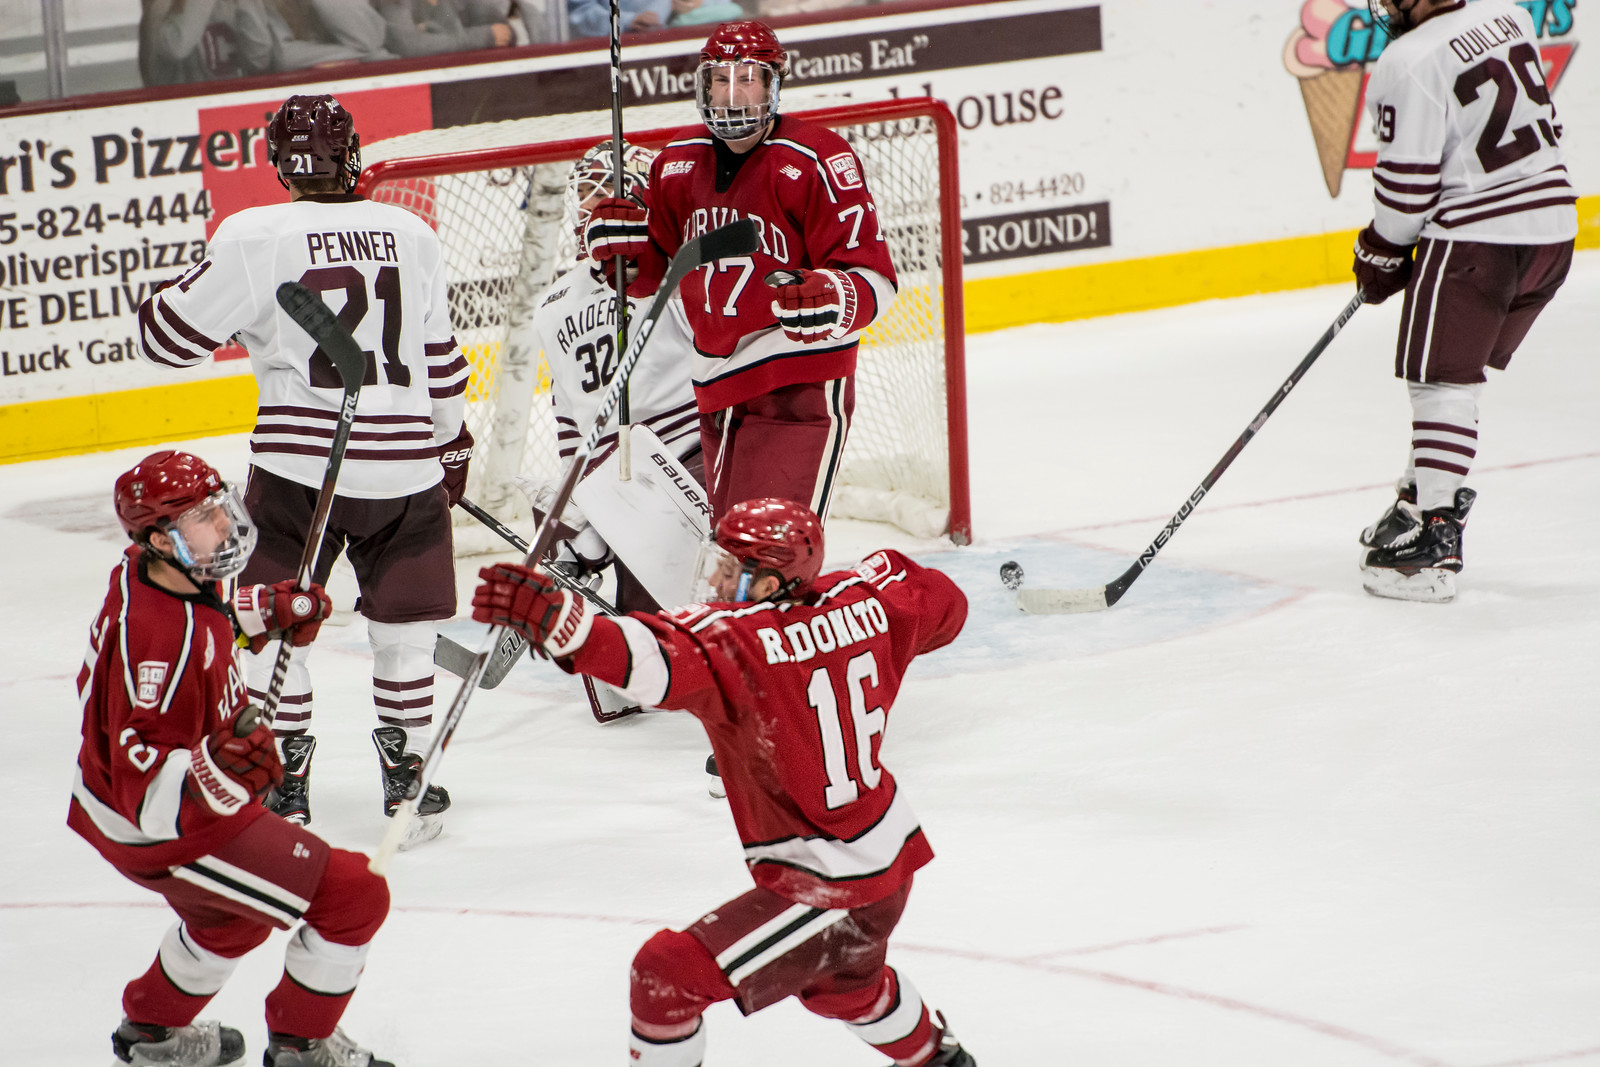 Harvard will be looking to harness more of the energy pictured above, after junior forward Ryan Donato's goal at Colgate last weekend.